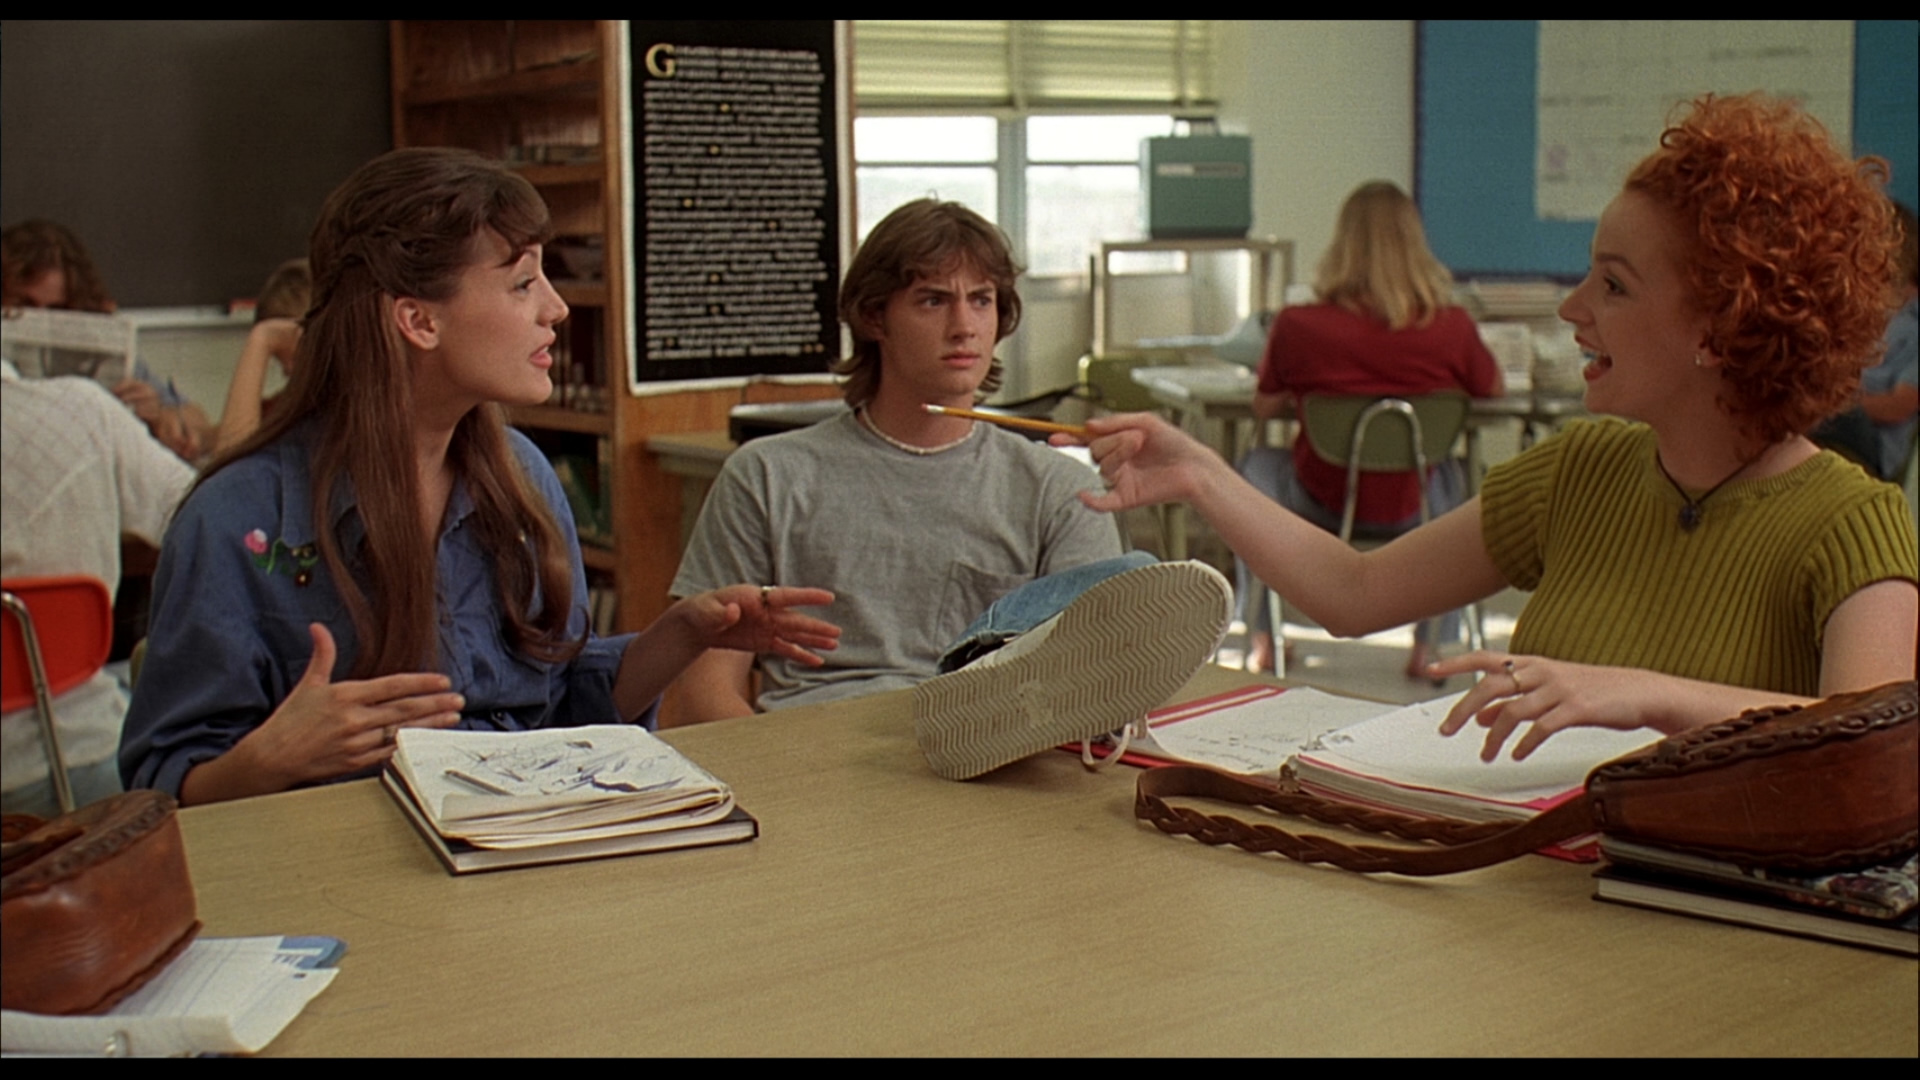 https://i0.wp.com/www.dvdbeaver.com/film3/blu-ray_reviews55/dazed_and_confused_blu-ray_/large/large_criterion_dazed_and_confused_blu-ray_2.jpg